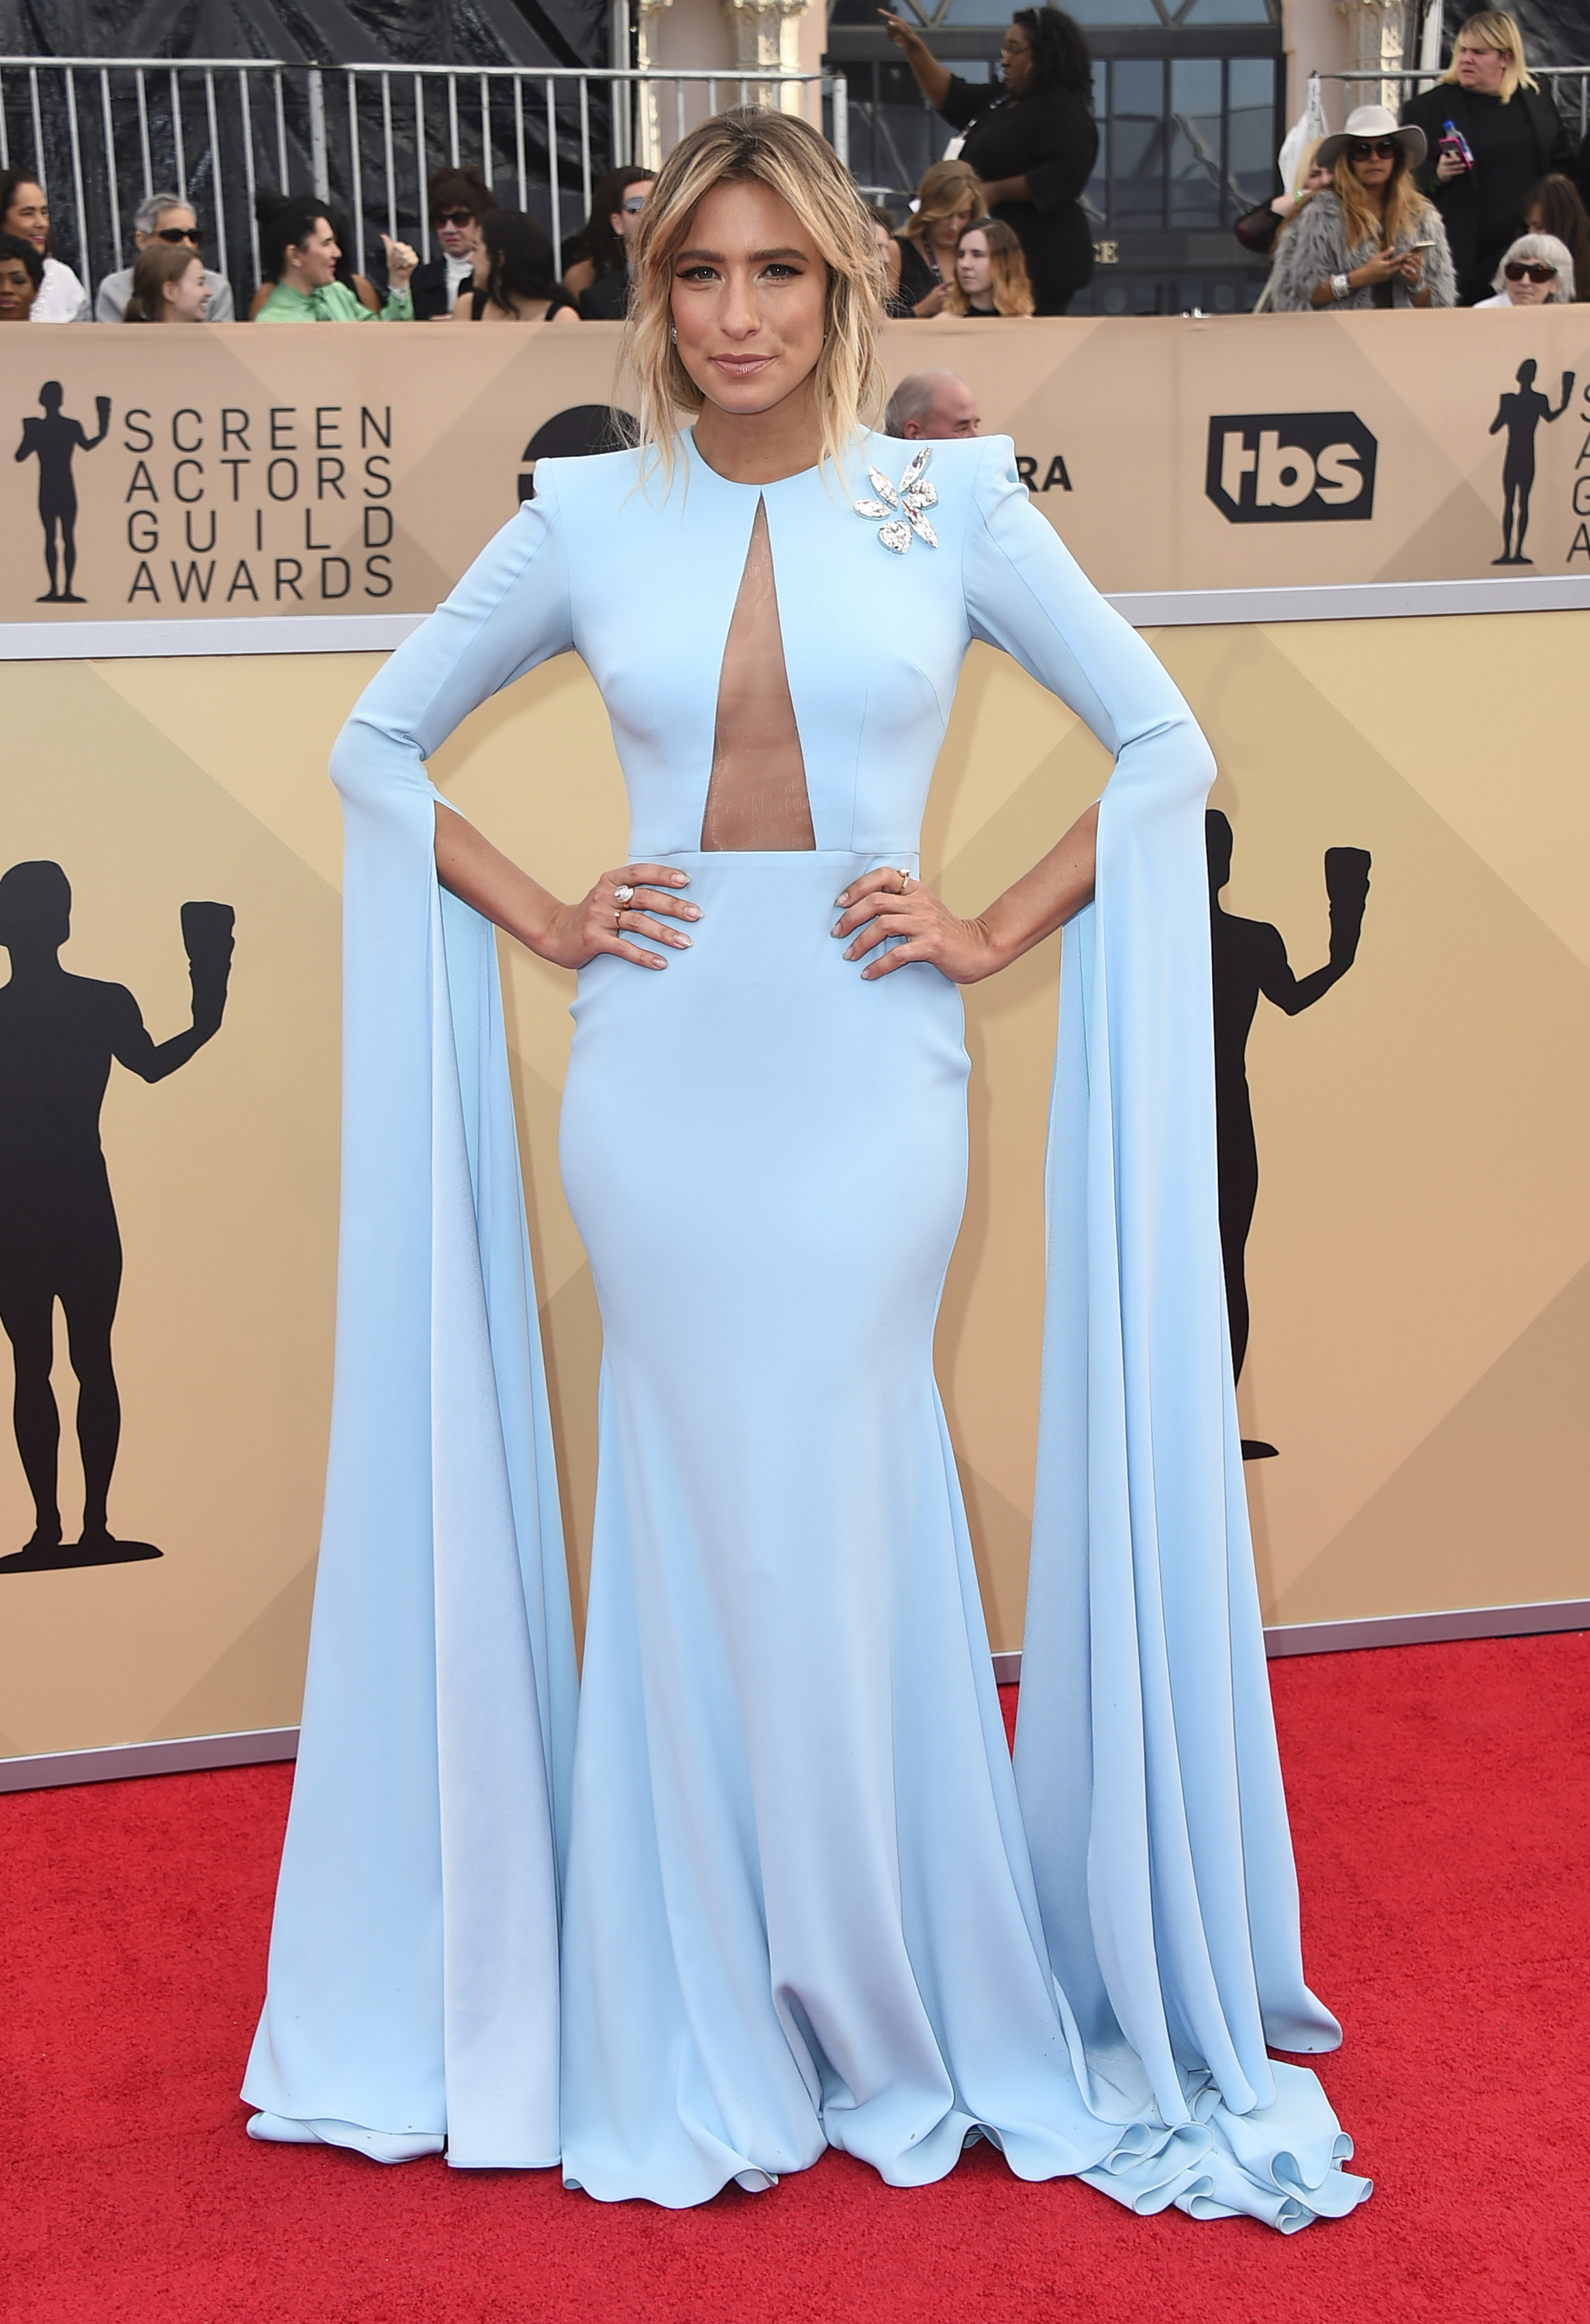 <div class='meta'><div class='origin-logo' data-origin='AP'></div><span class='caption-text' data-credit='Jordan Strauss/Invision/AP'>Renee Bargh arrives at the 24th annual Screen Actors Guild Awards at the Shrine Auditorium & Expo Hall on Sunday, Jan. 21, 2018, in Los Angeles.</span></div>